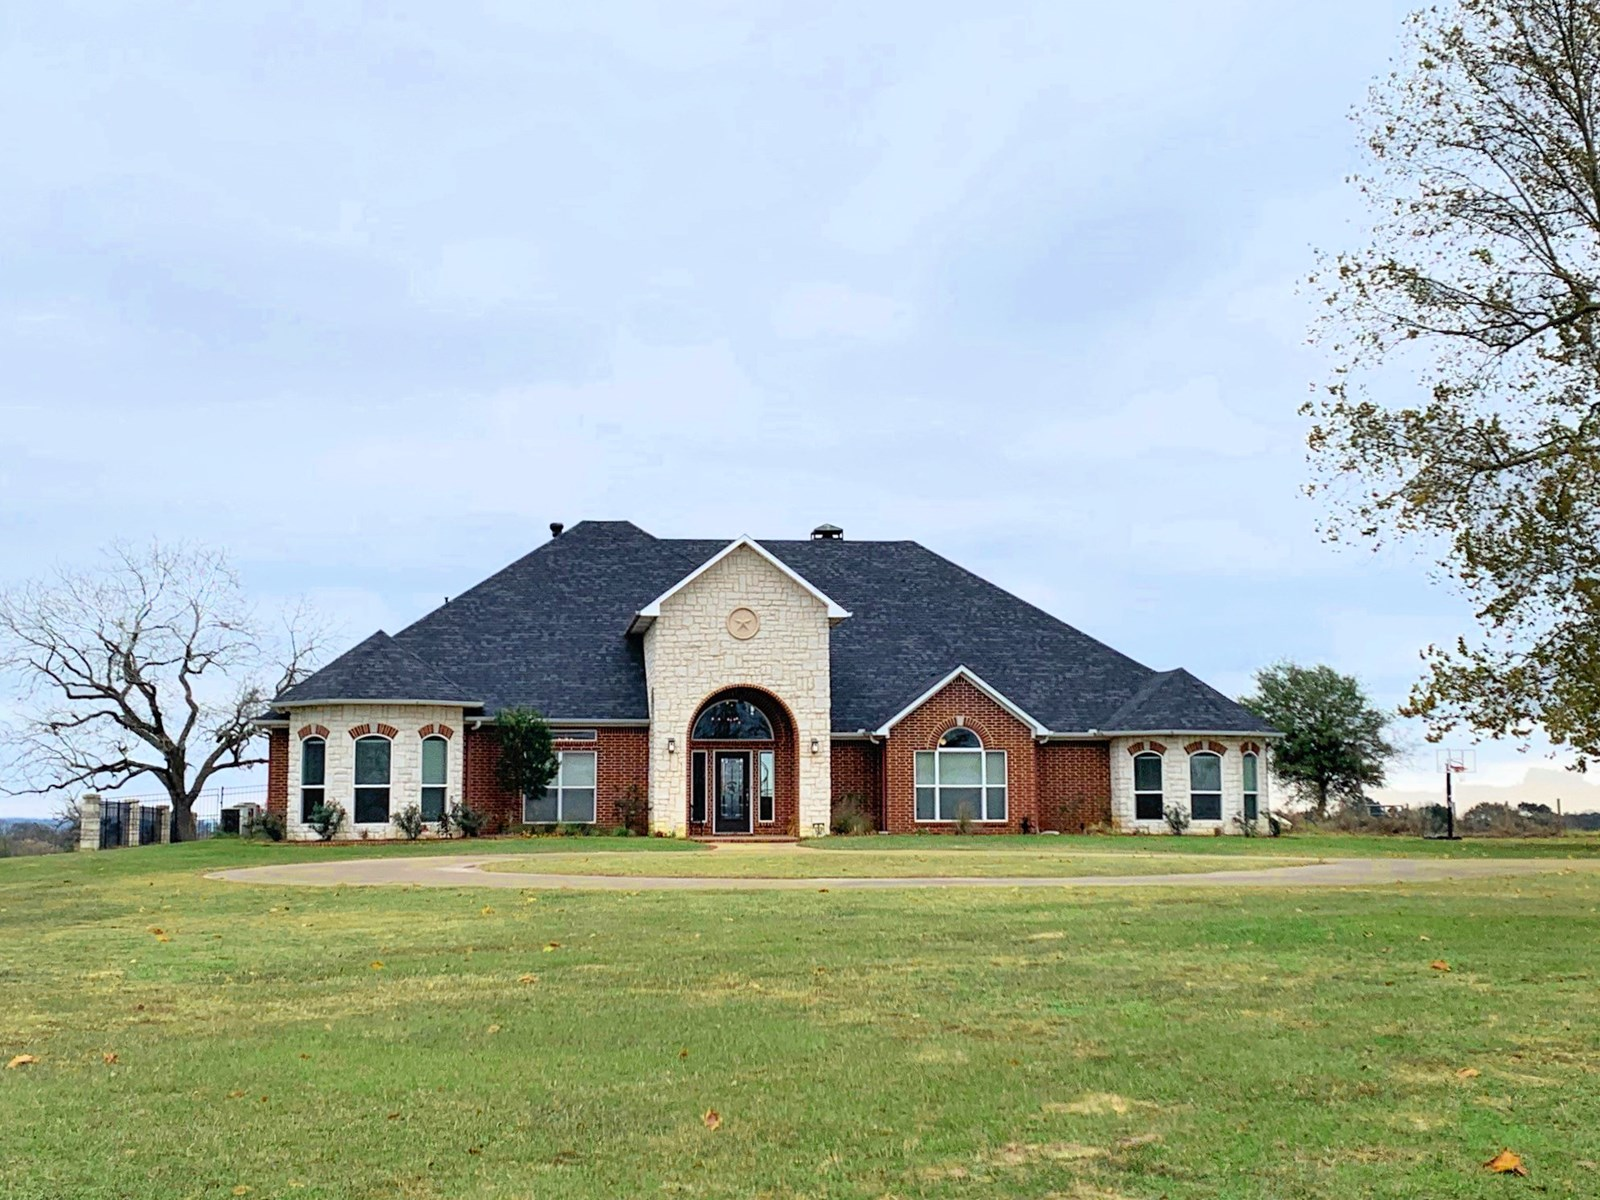 EAST TX COUNTRY HOME AND ACREAGE FOR SALE | FRANKSTON TX